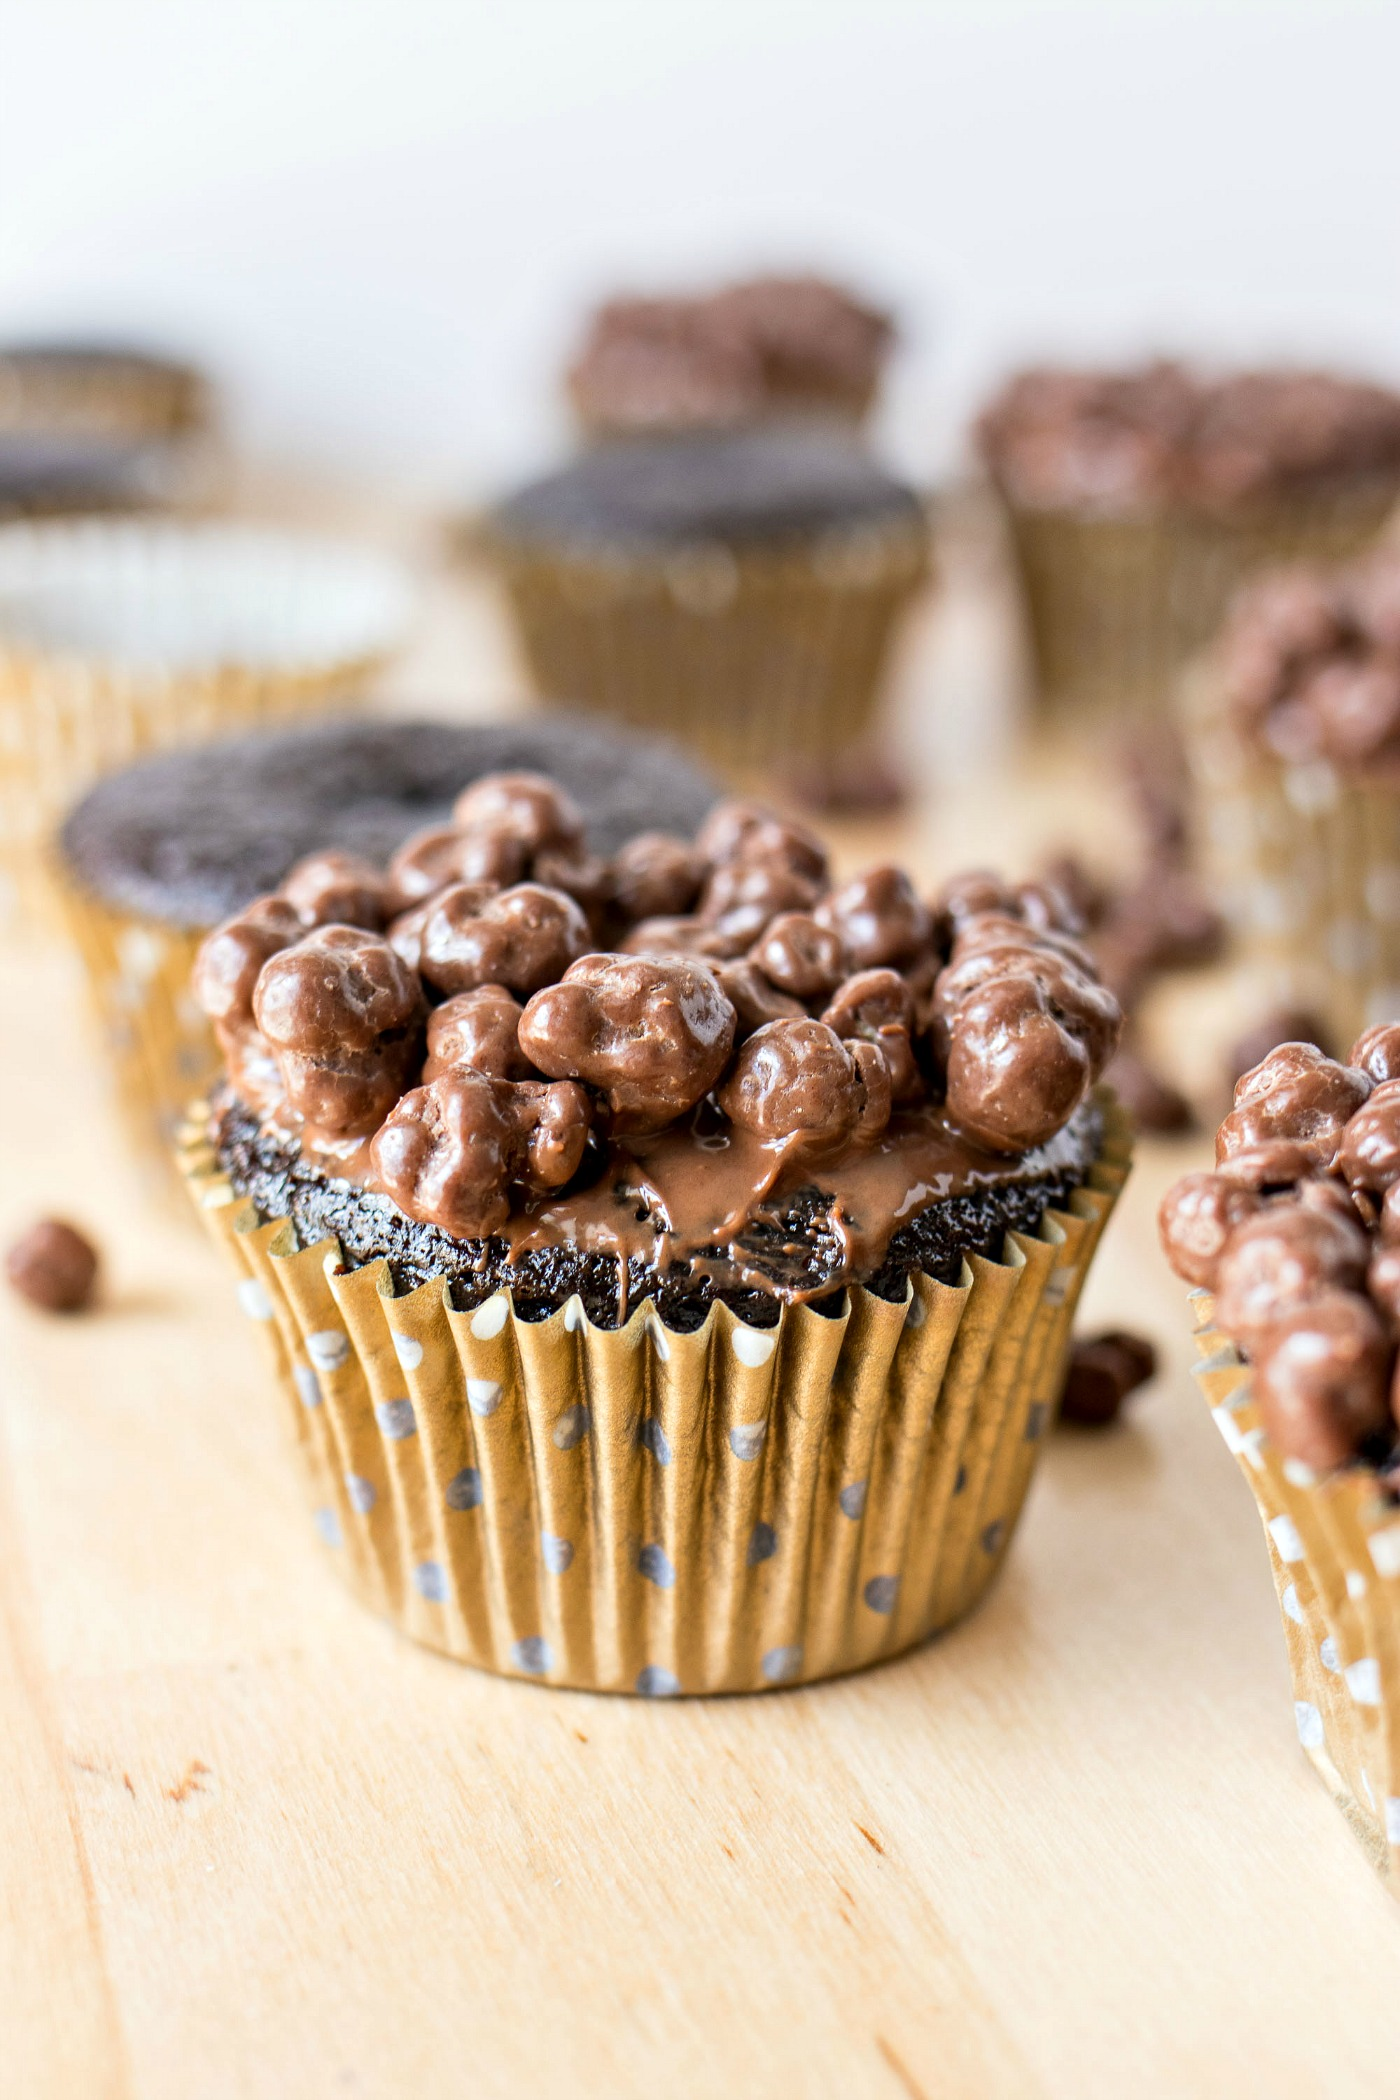 Nutella Crunch Cupcakes with nutella and crisped rice on top